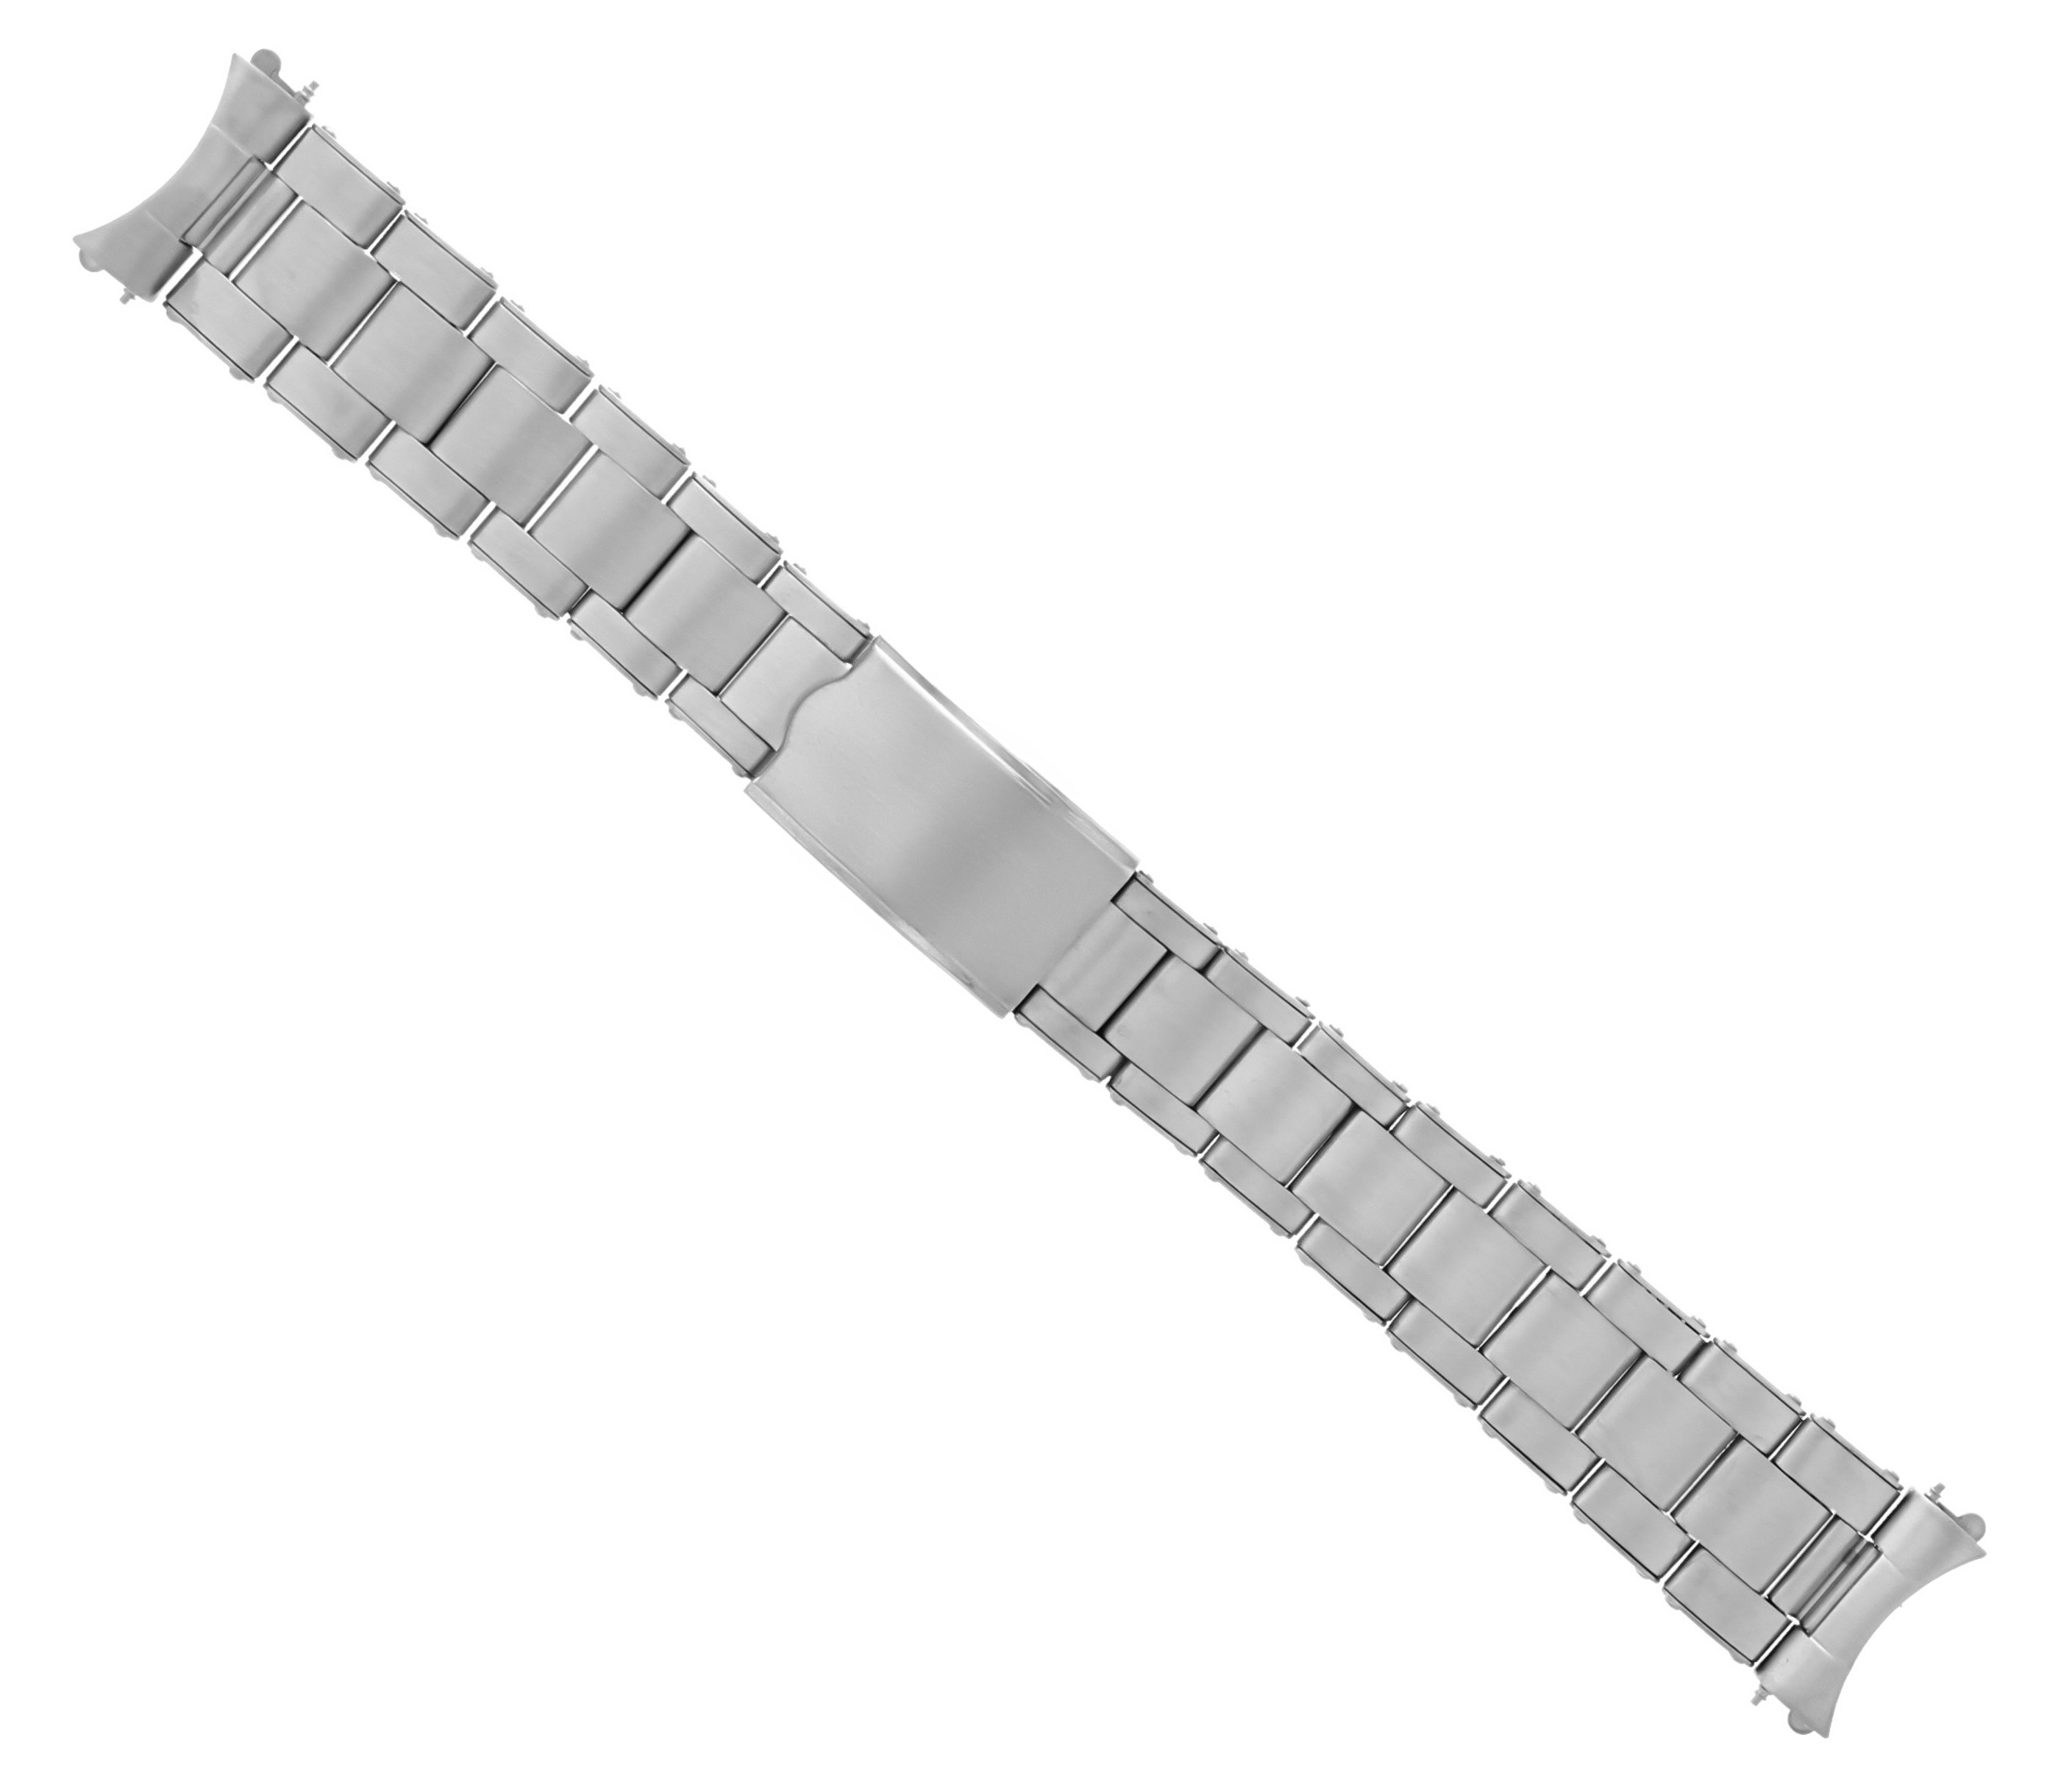 15e5d86c9da5d Details about WATCH BAND STAINLESS STEEL BRACELET FOR VINTAGE TUDOR  SUBMARINER 20MM RIVITED